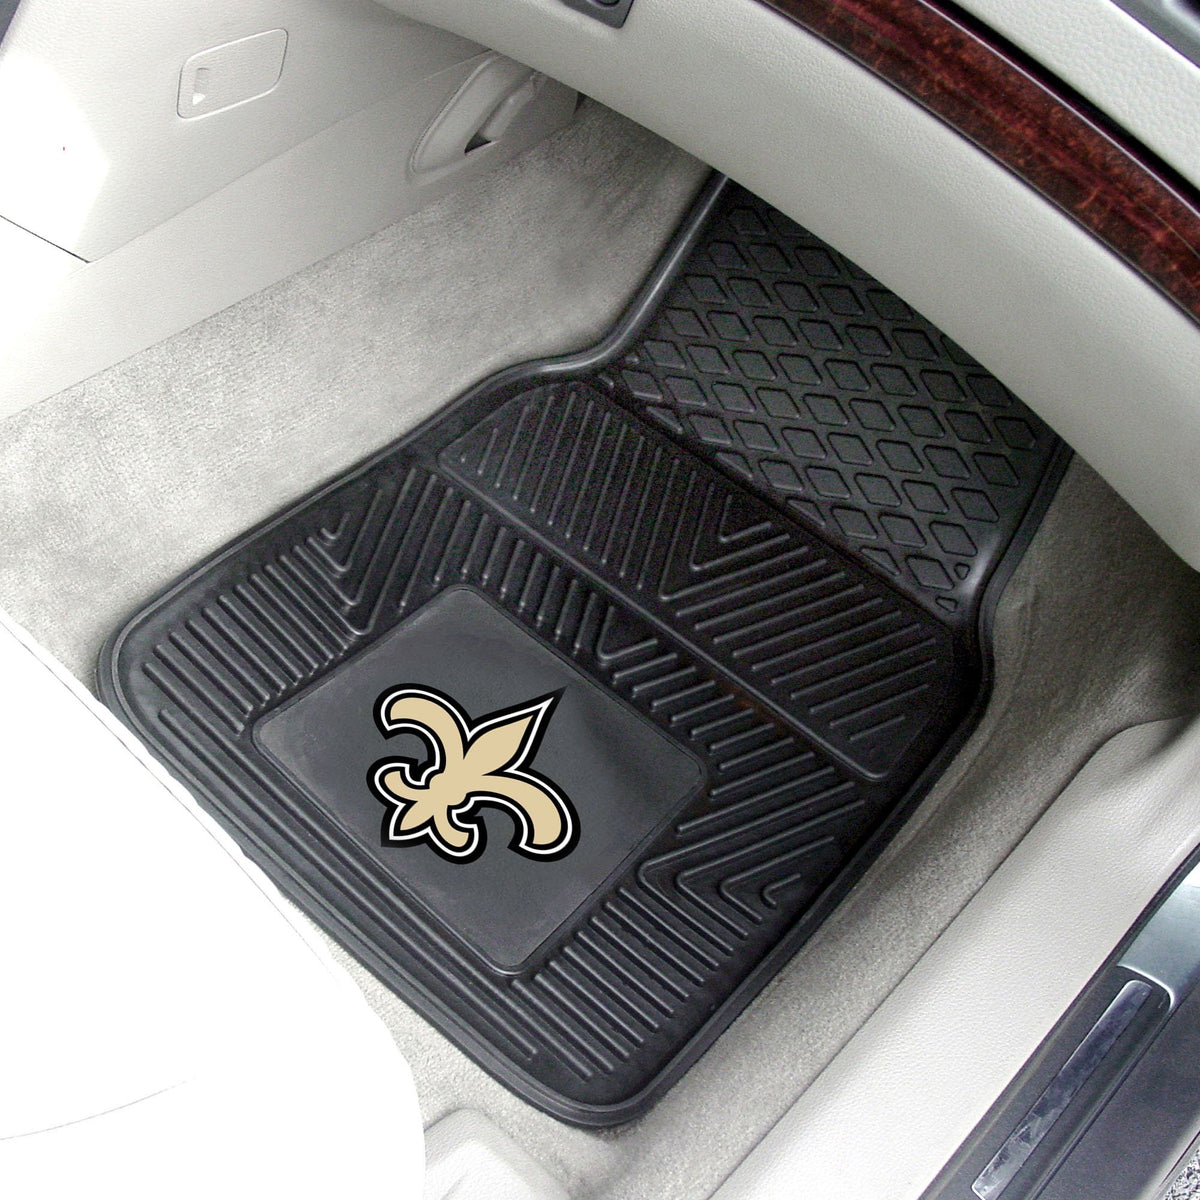 NFL - 2-pc Vinyl Car Mat Set NFL Mats, Front Car Mats, 2-pc Vinyl Car Mat Set, NFL, Auto Fan Mats New Orleans Saints